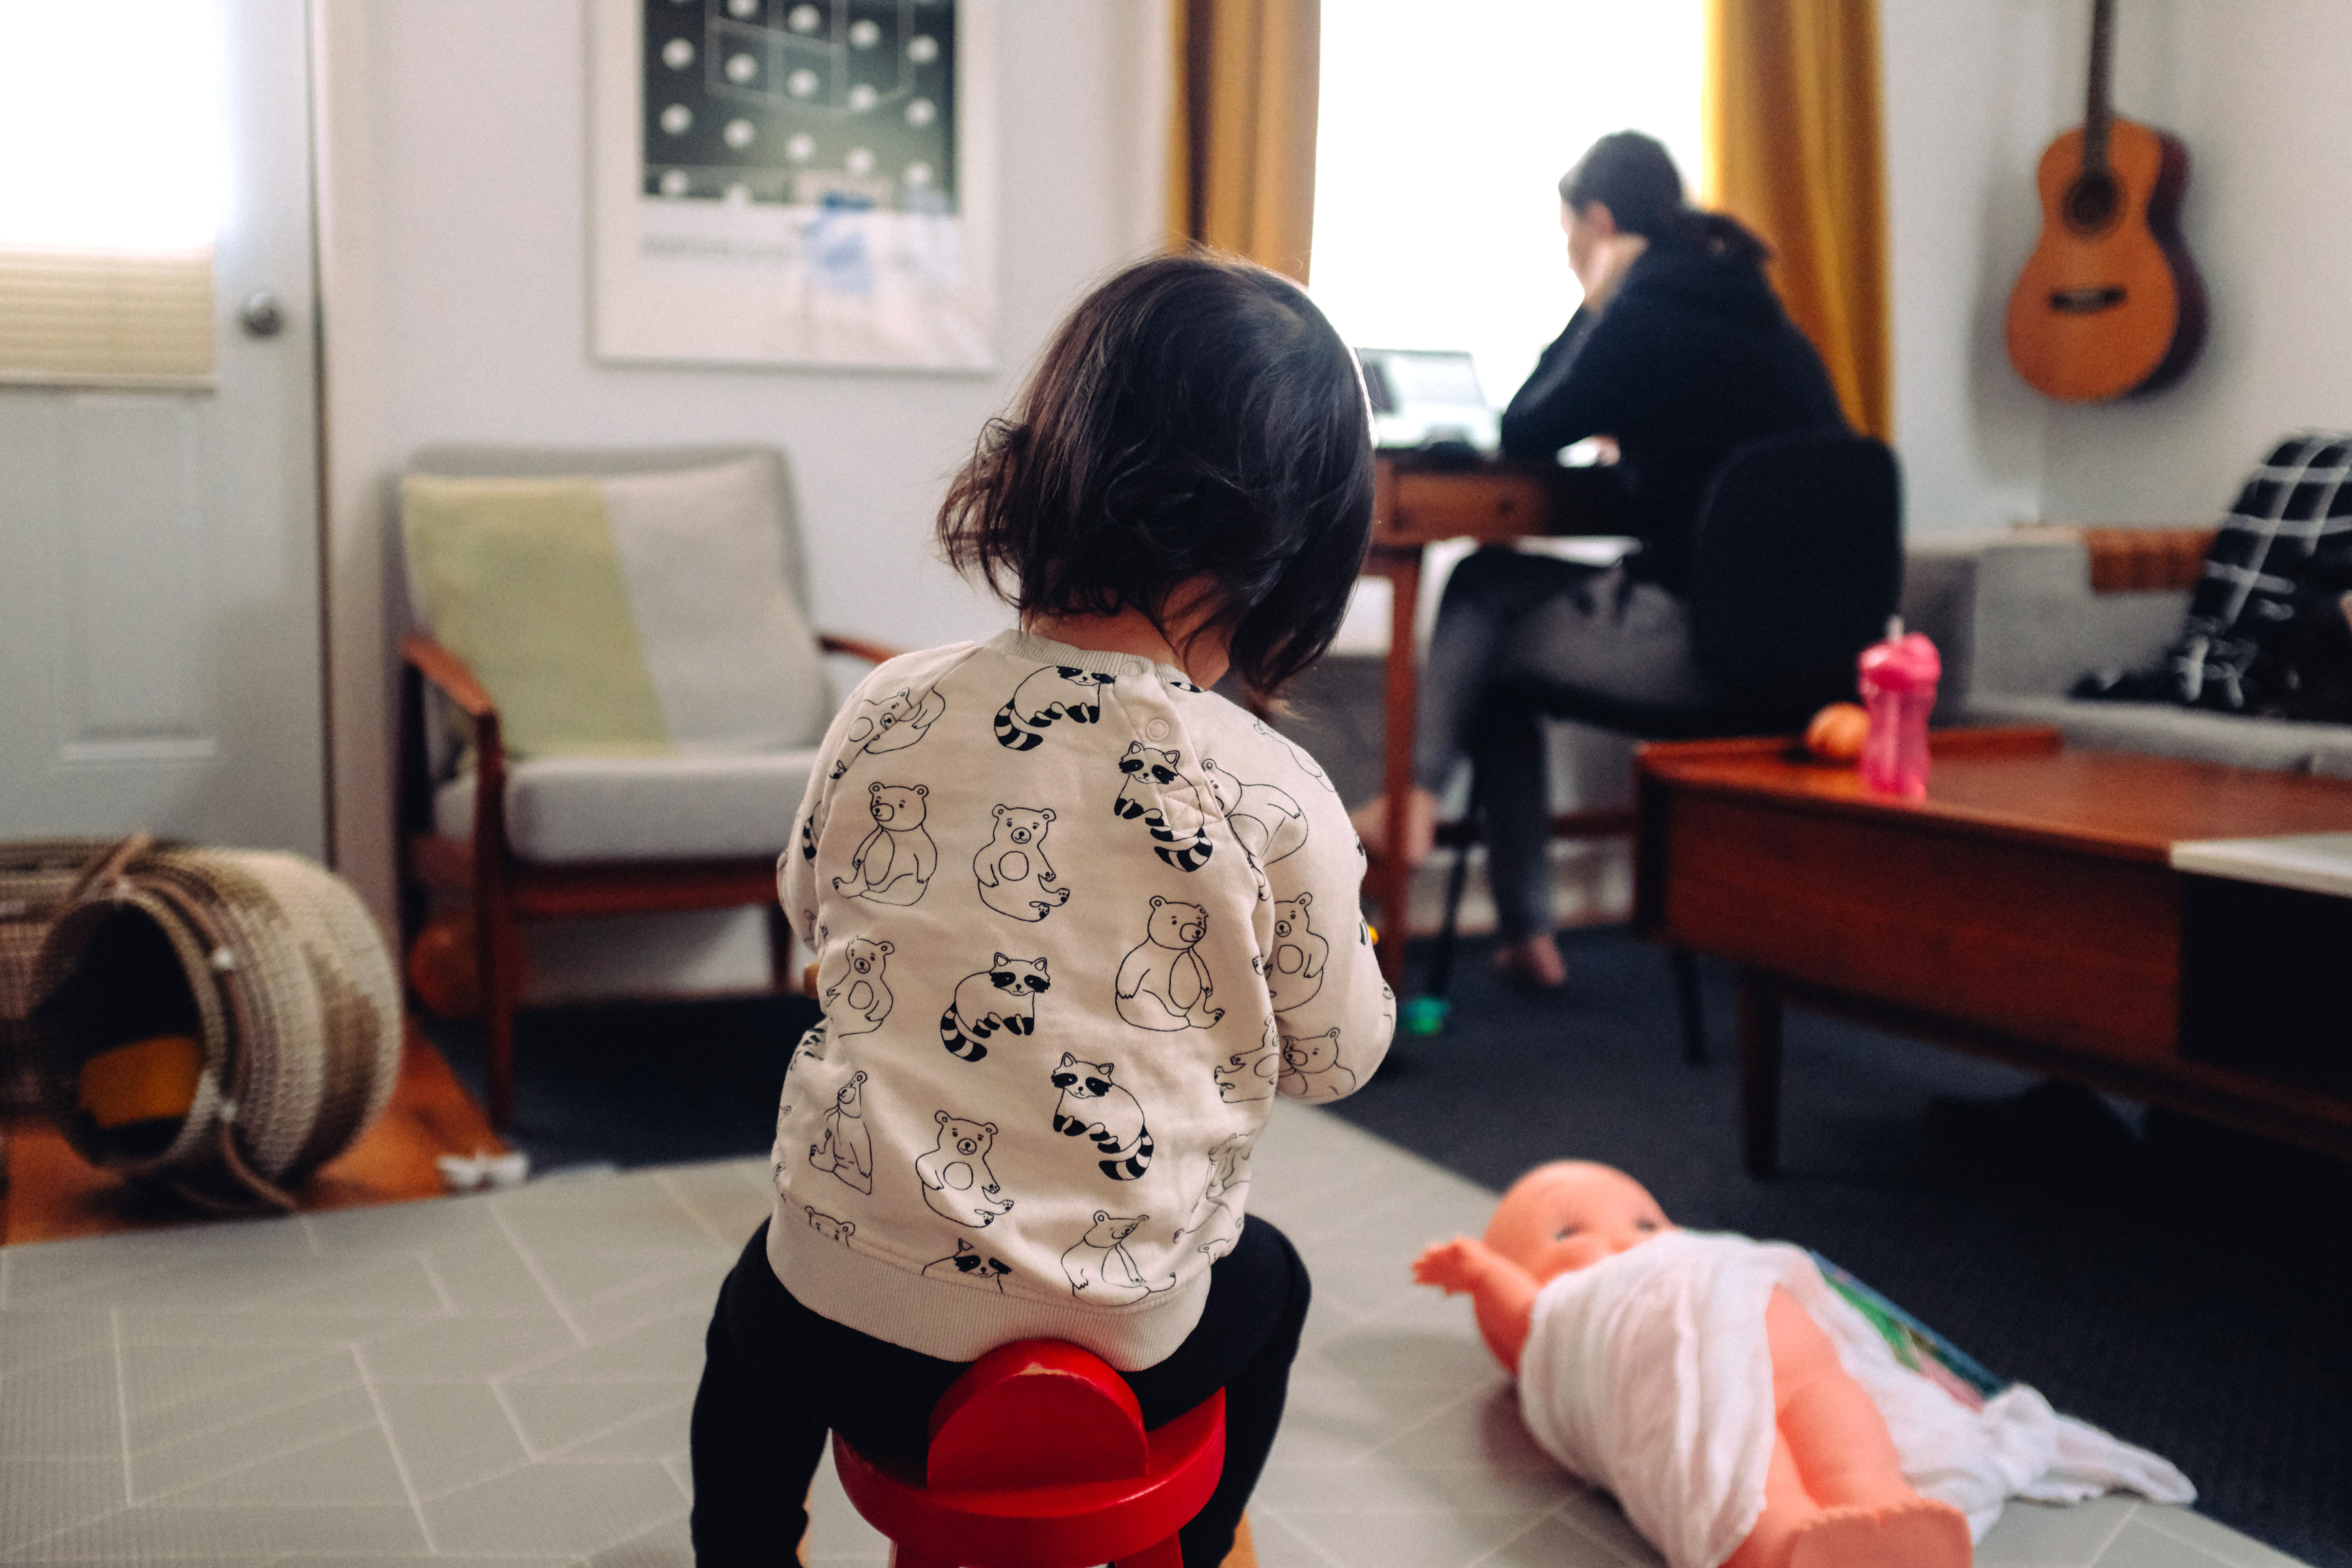 5 Tips for Sharing a Home Workspace with Small Children